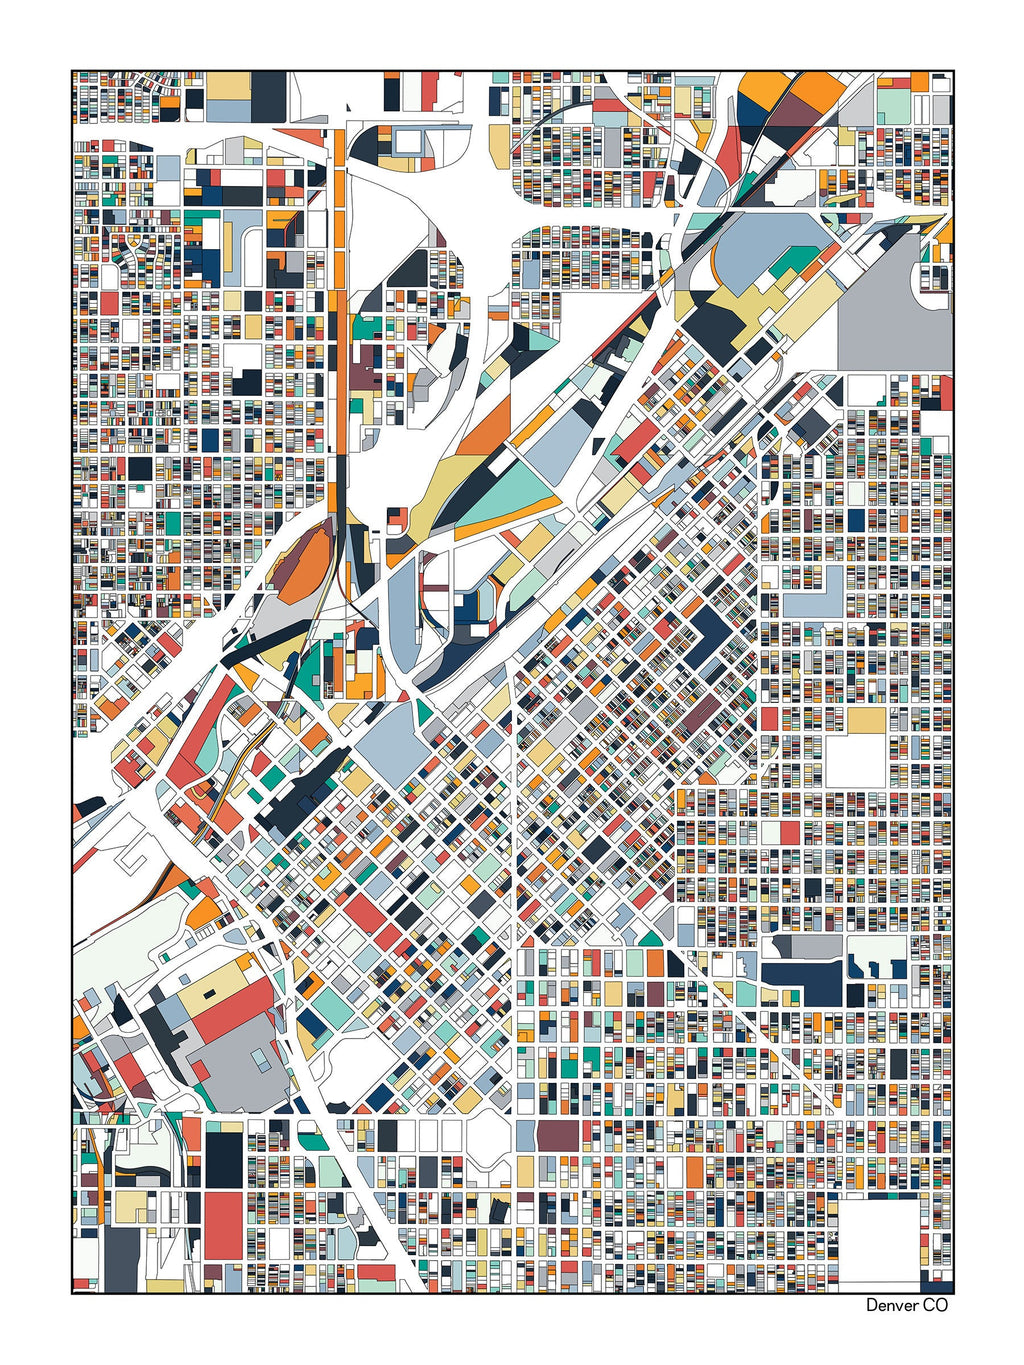 Denver Colorado Art Map Print Poster Wall Art Home Decor Office Decor Denver CO Gift Print Abstract Art